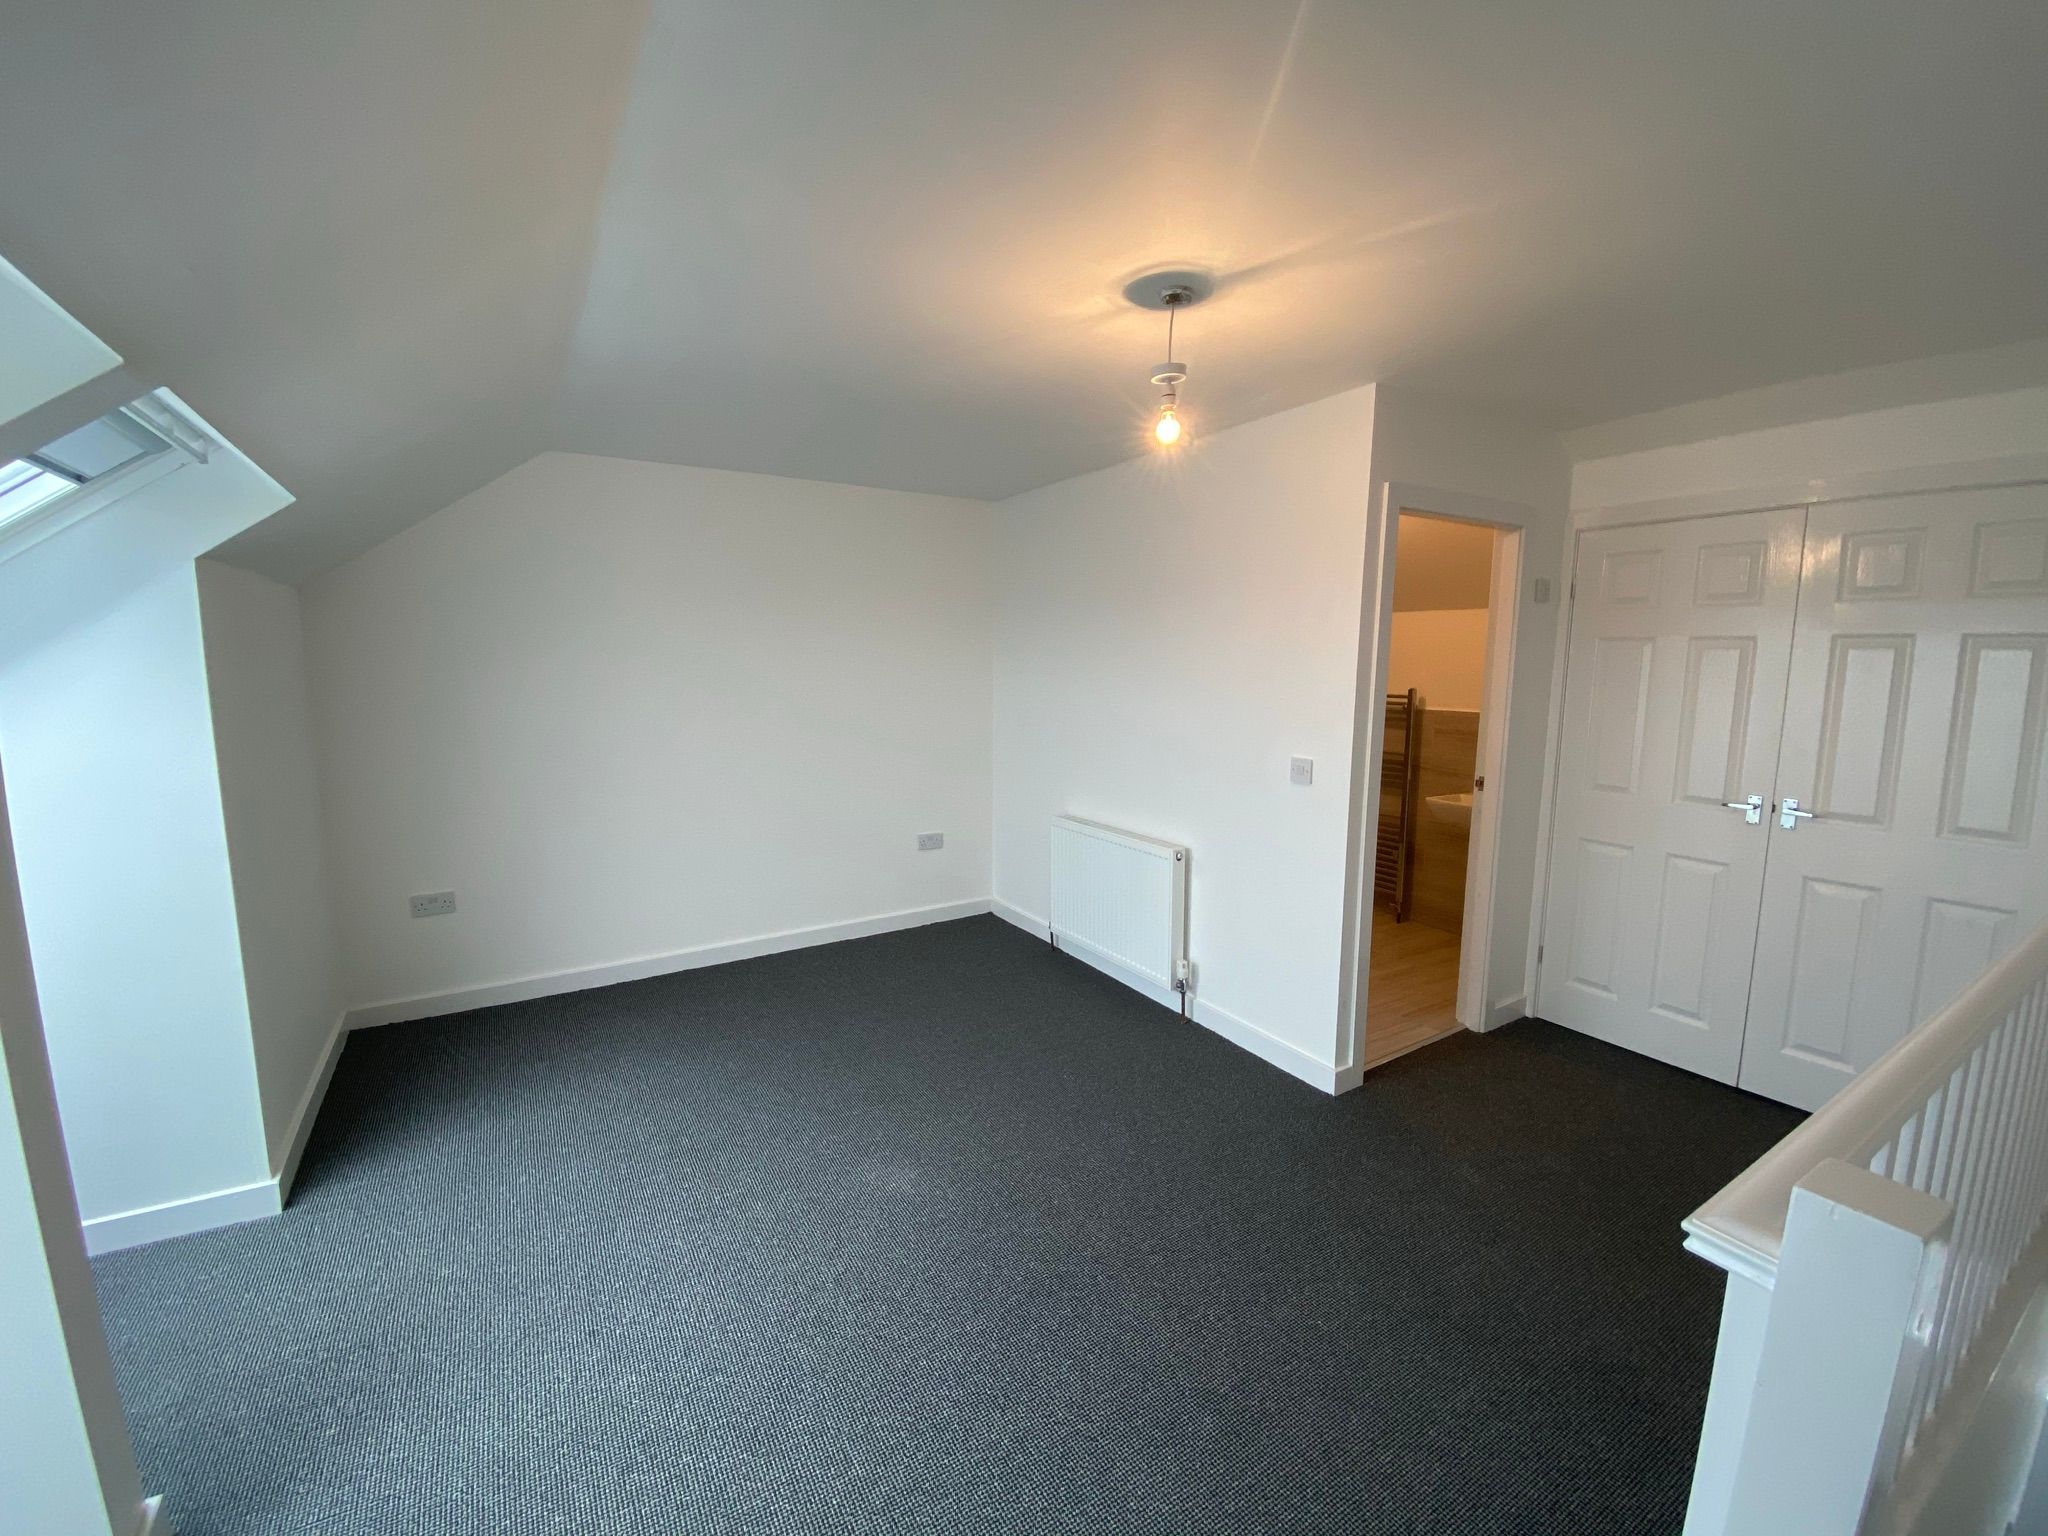 4 bedroom detached house For Sale in Durham - Photograph 31.